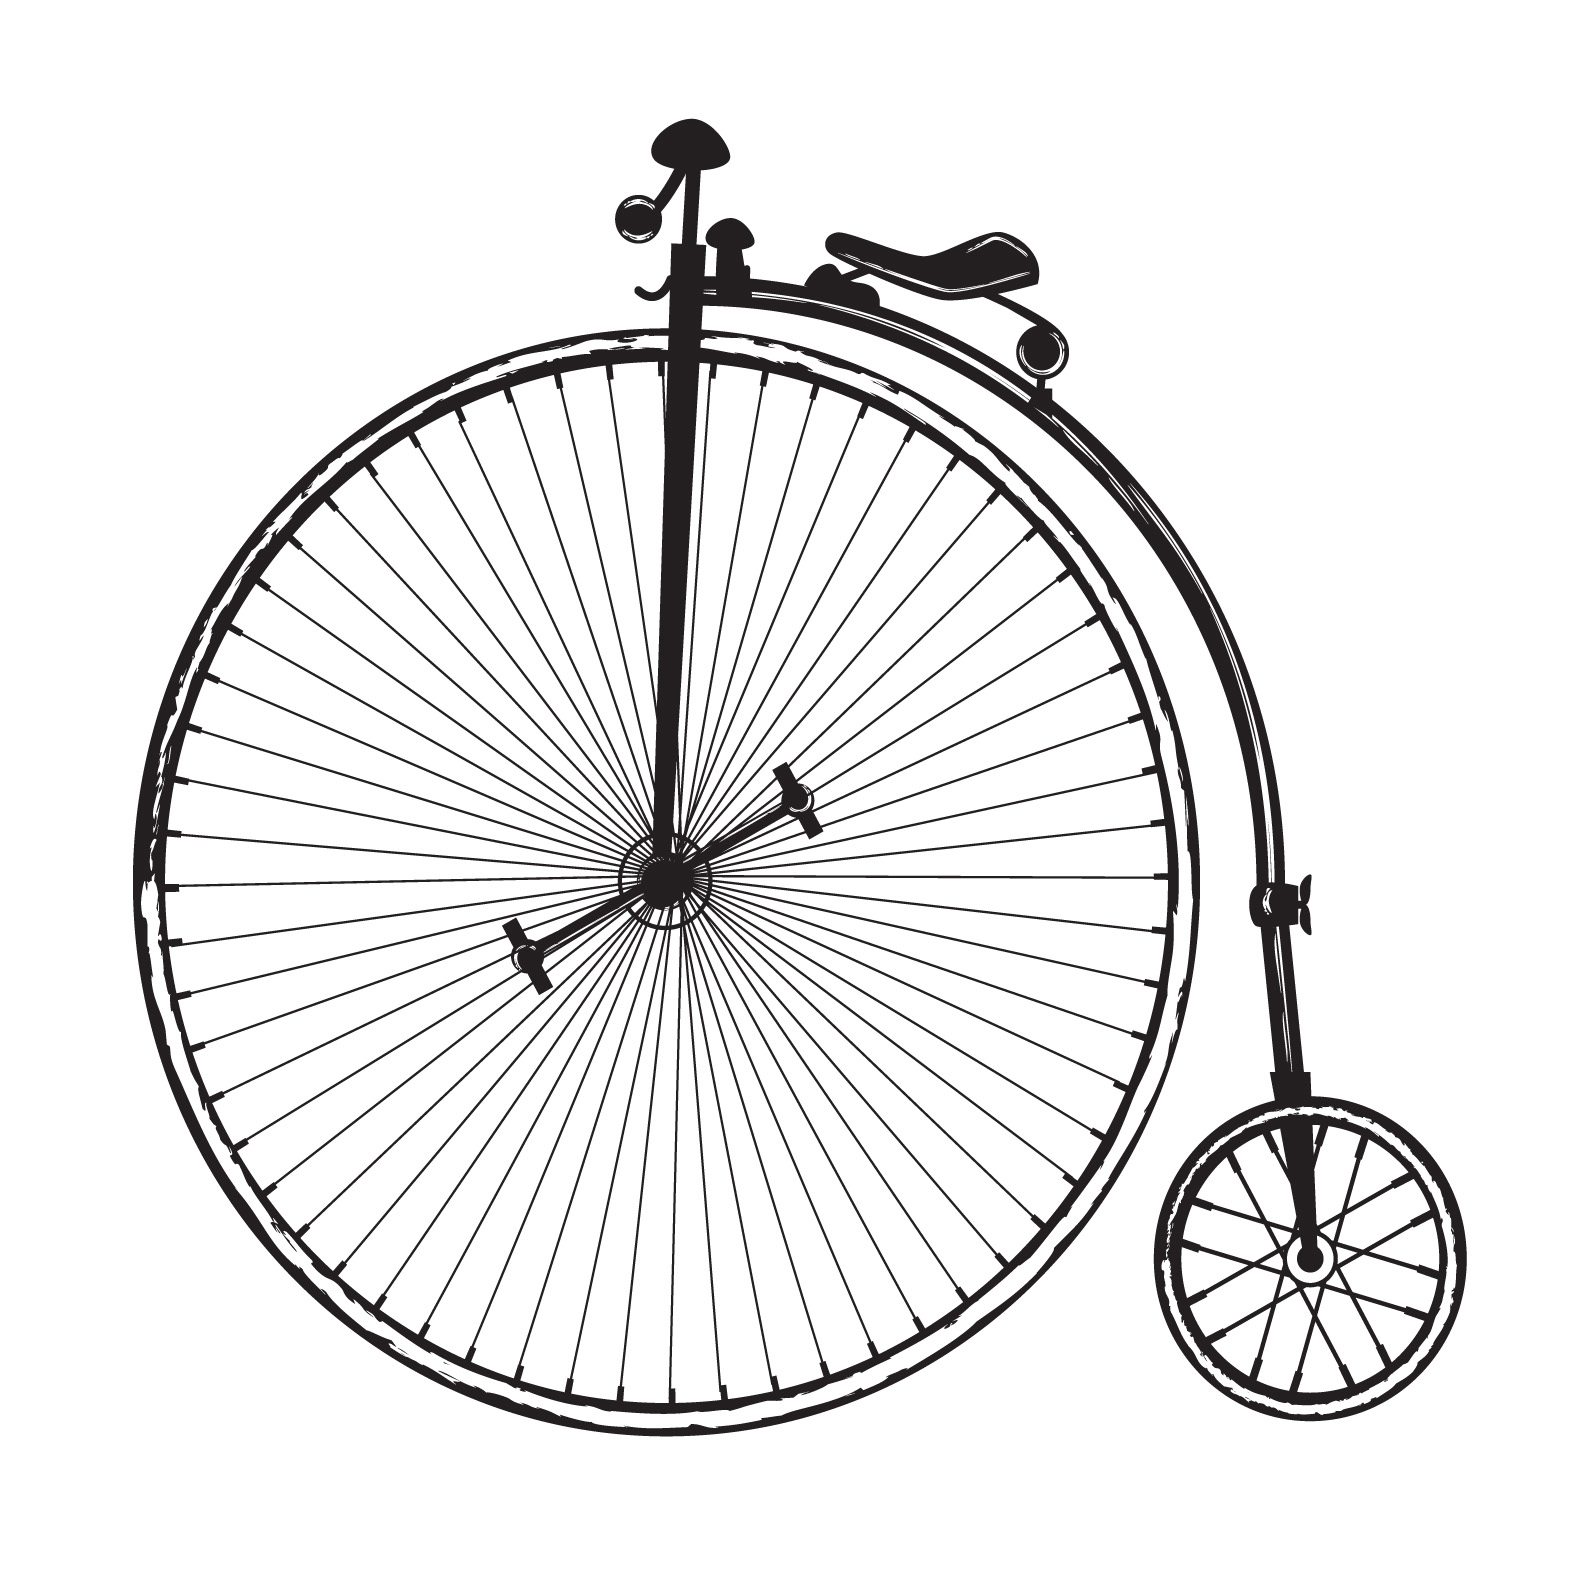 Victorian clipart old fashioned Free bicycle ⎙ me PRINT